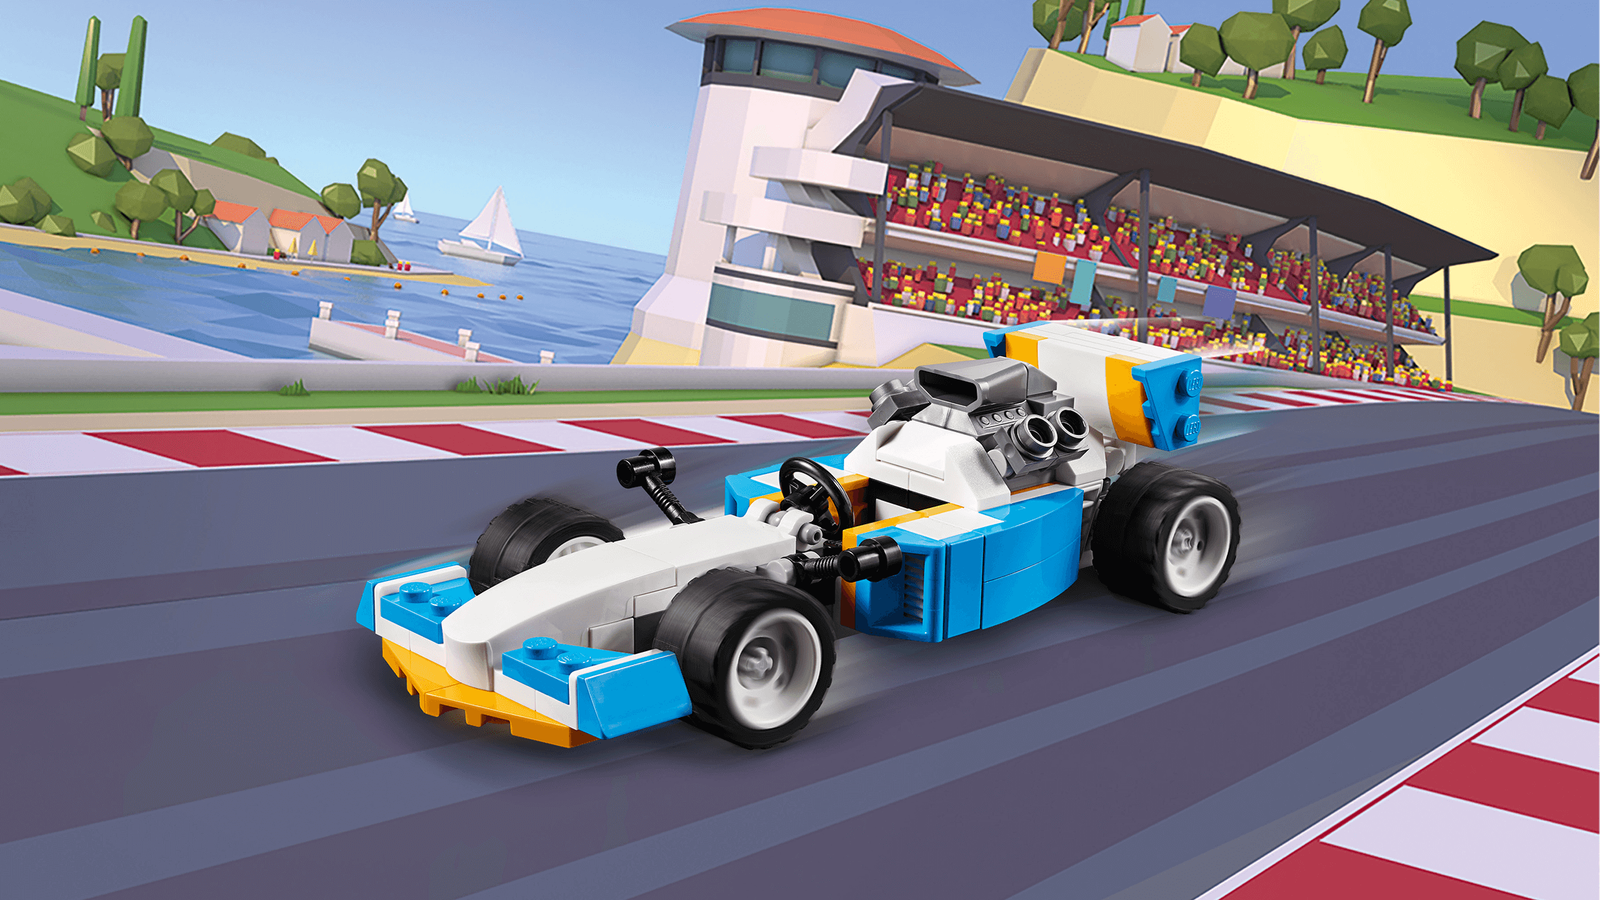 Toy Cars | Categories | Official LEGO® Shop US